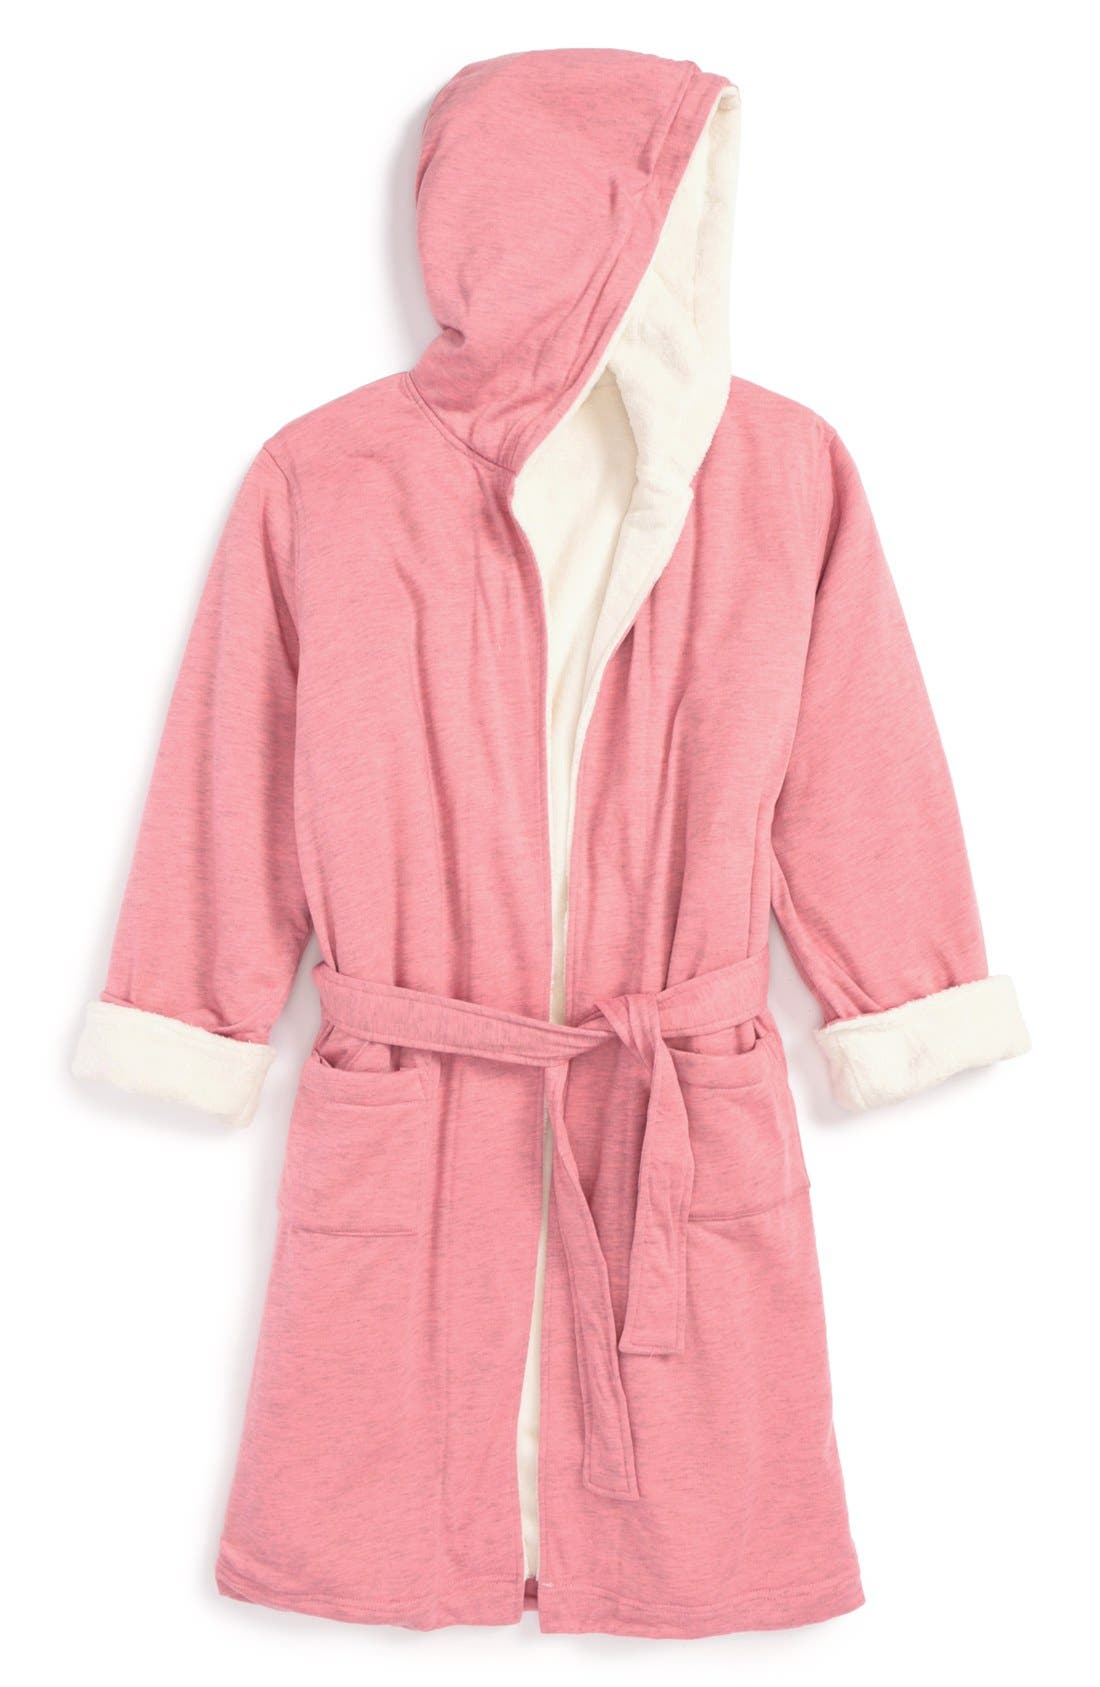 Main Image - Tucker + Tate Fluffy Hooded Robe (Little Girls & Big Girls)